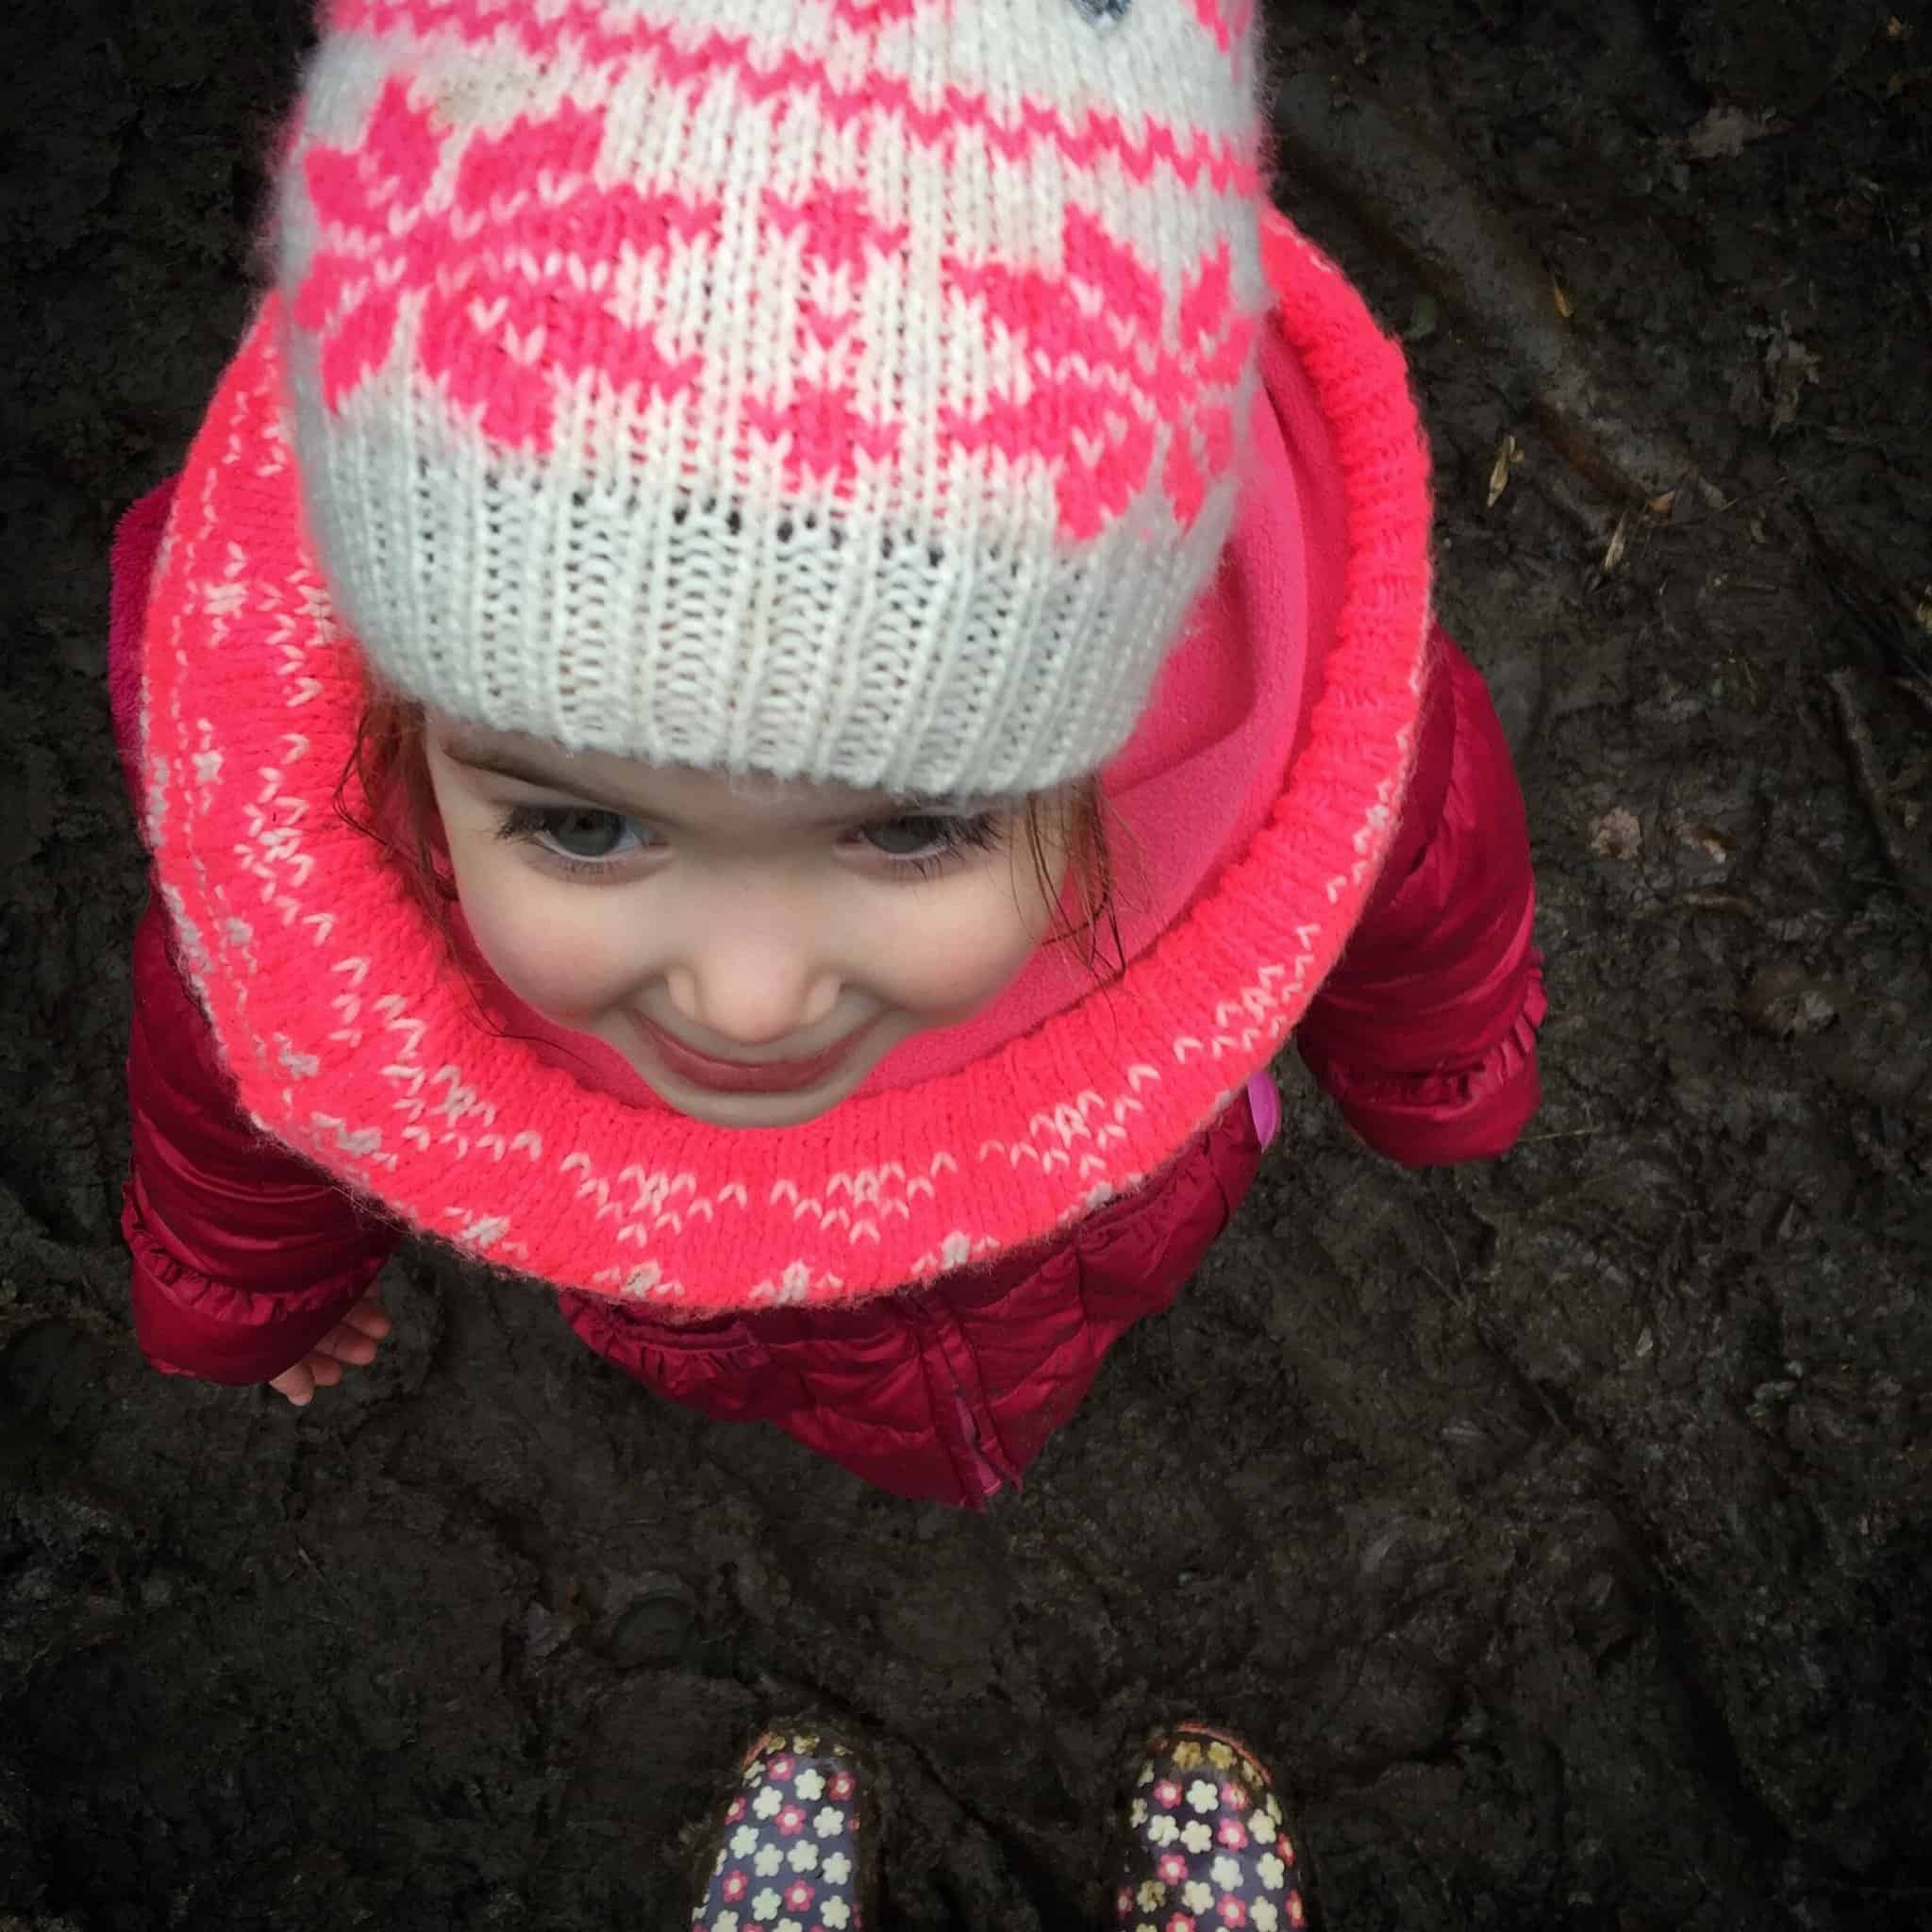 Thea in the mud